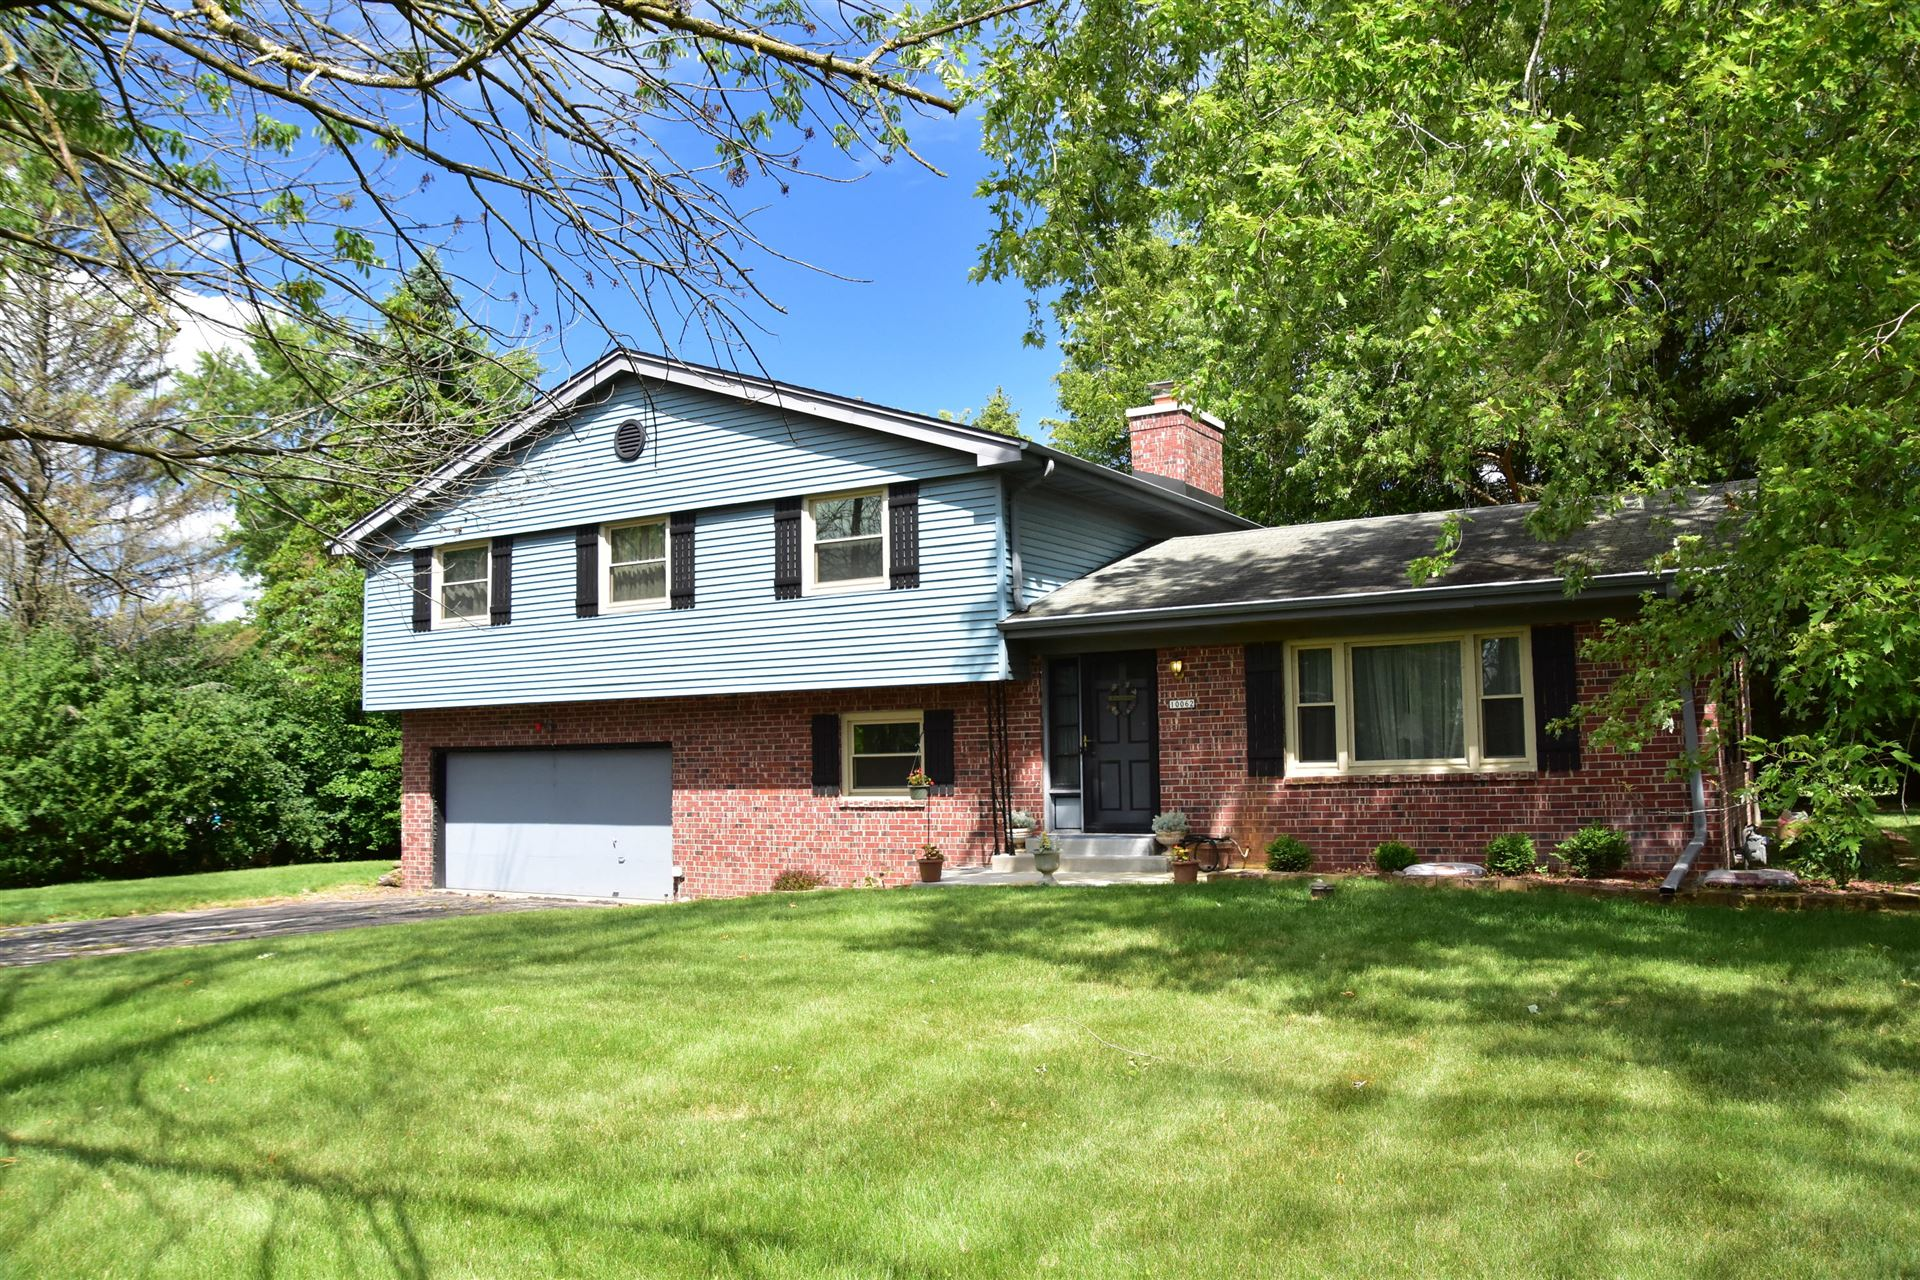 10062 N Sunnycrest Cr, Mequon, WI 53092 - #: 1701675